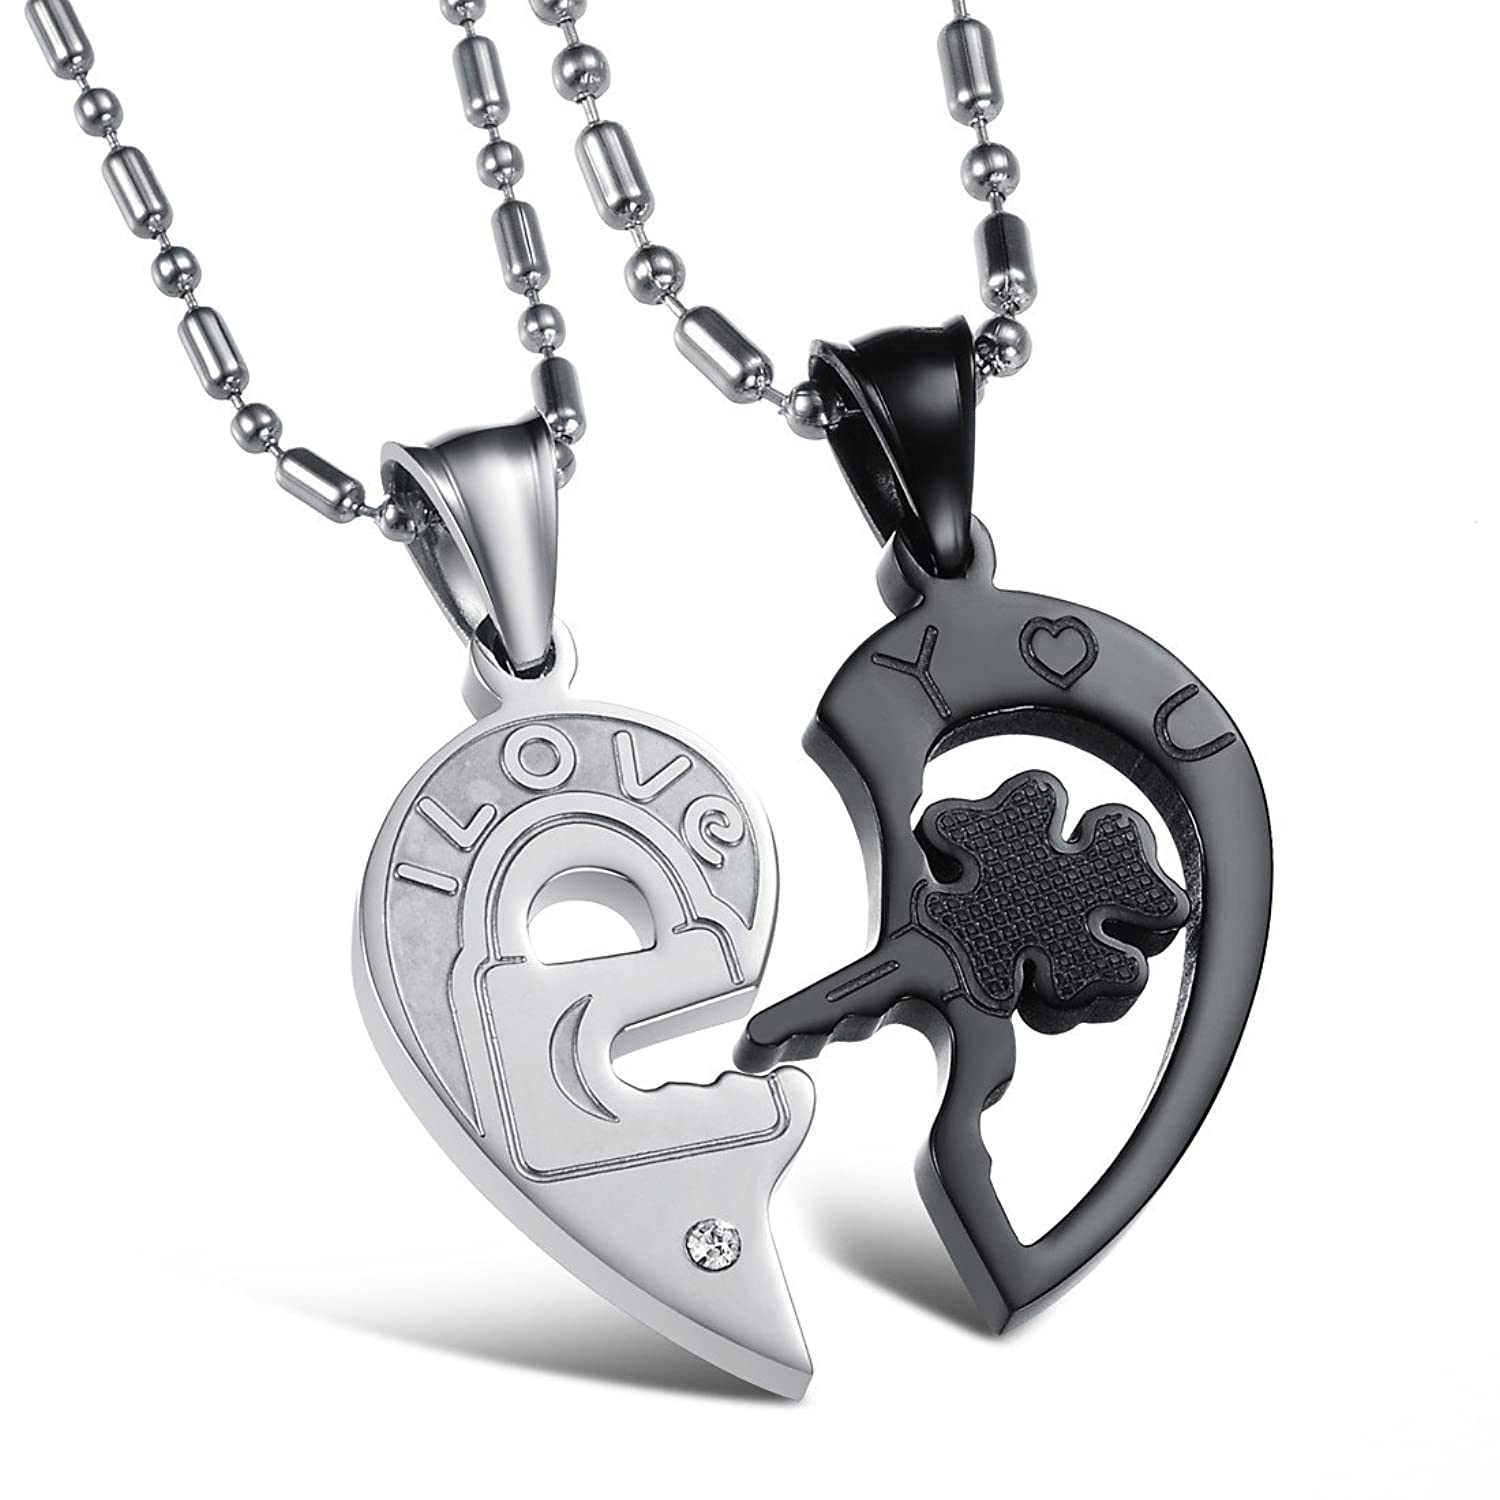 your you and heart open titanium pendant i key dp lock hers love necklace his sunnyhouse couple com amazon